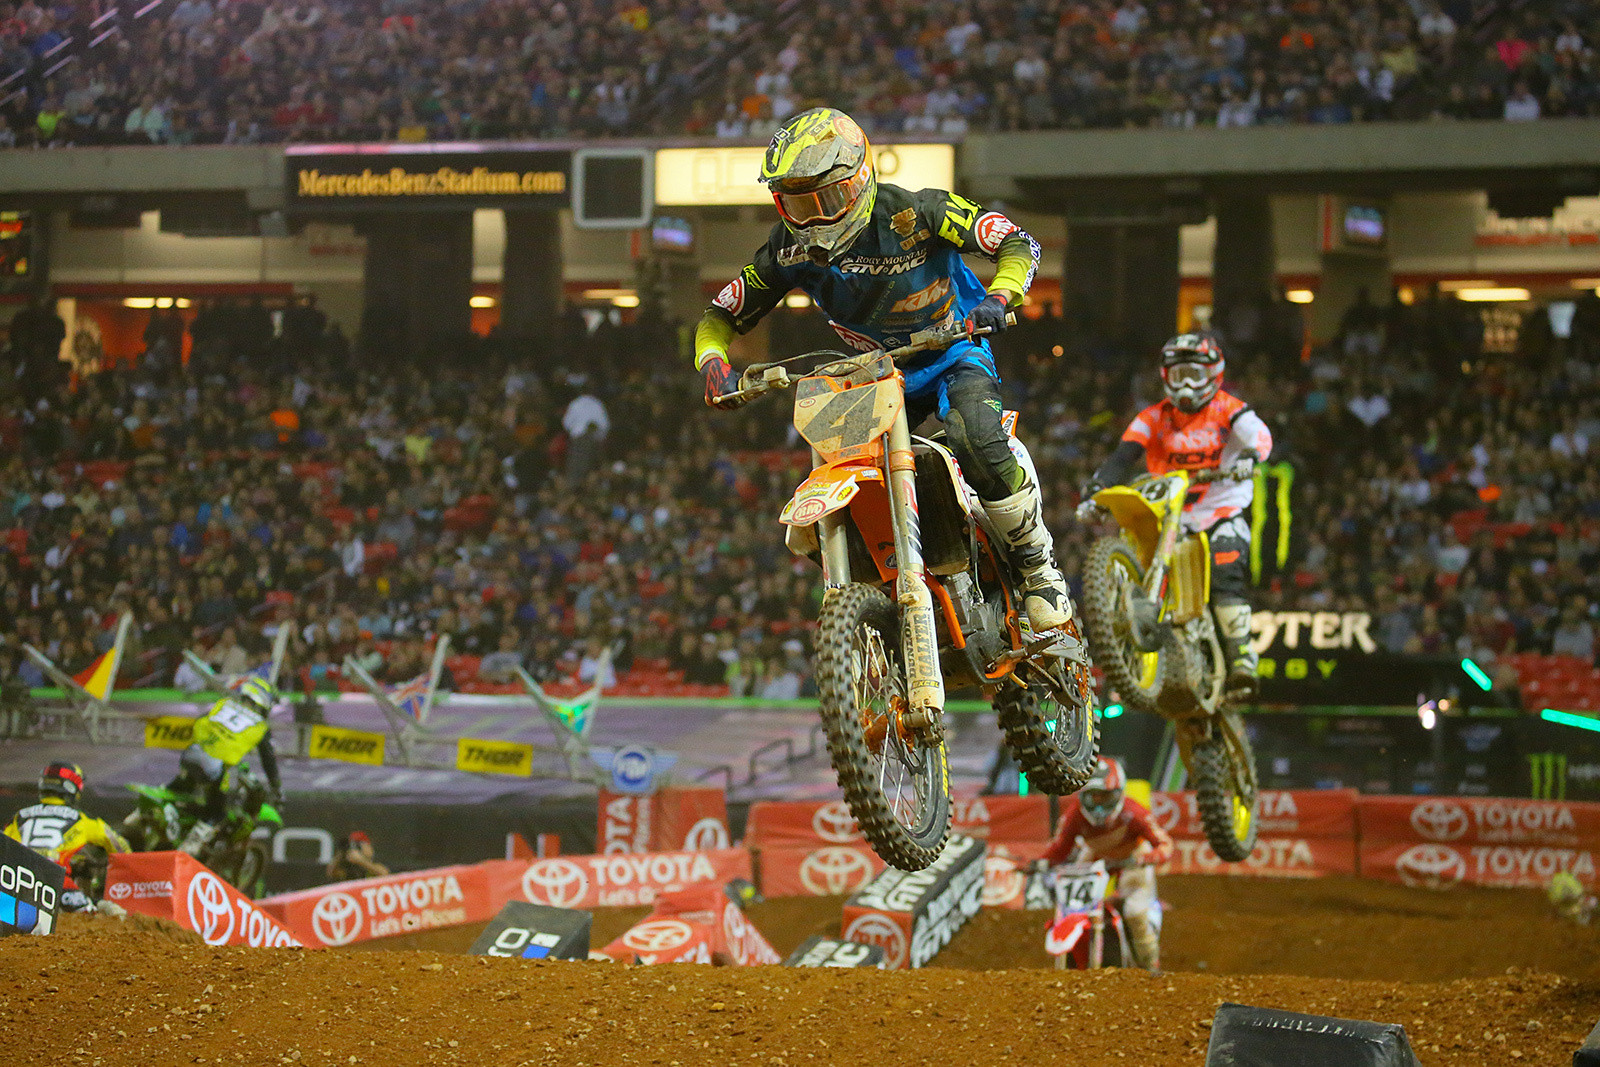 Blake Baggett - Photo Blast: Atlanta Supercross - Motocross Pictures - Vital MX